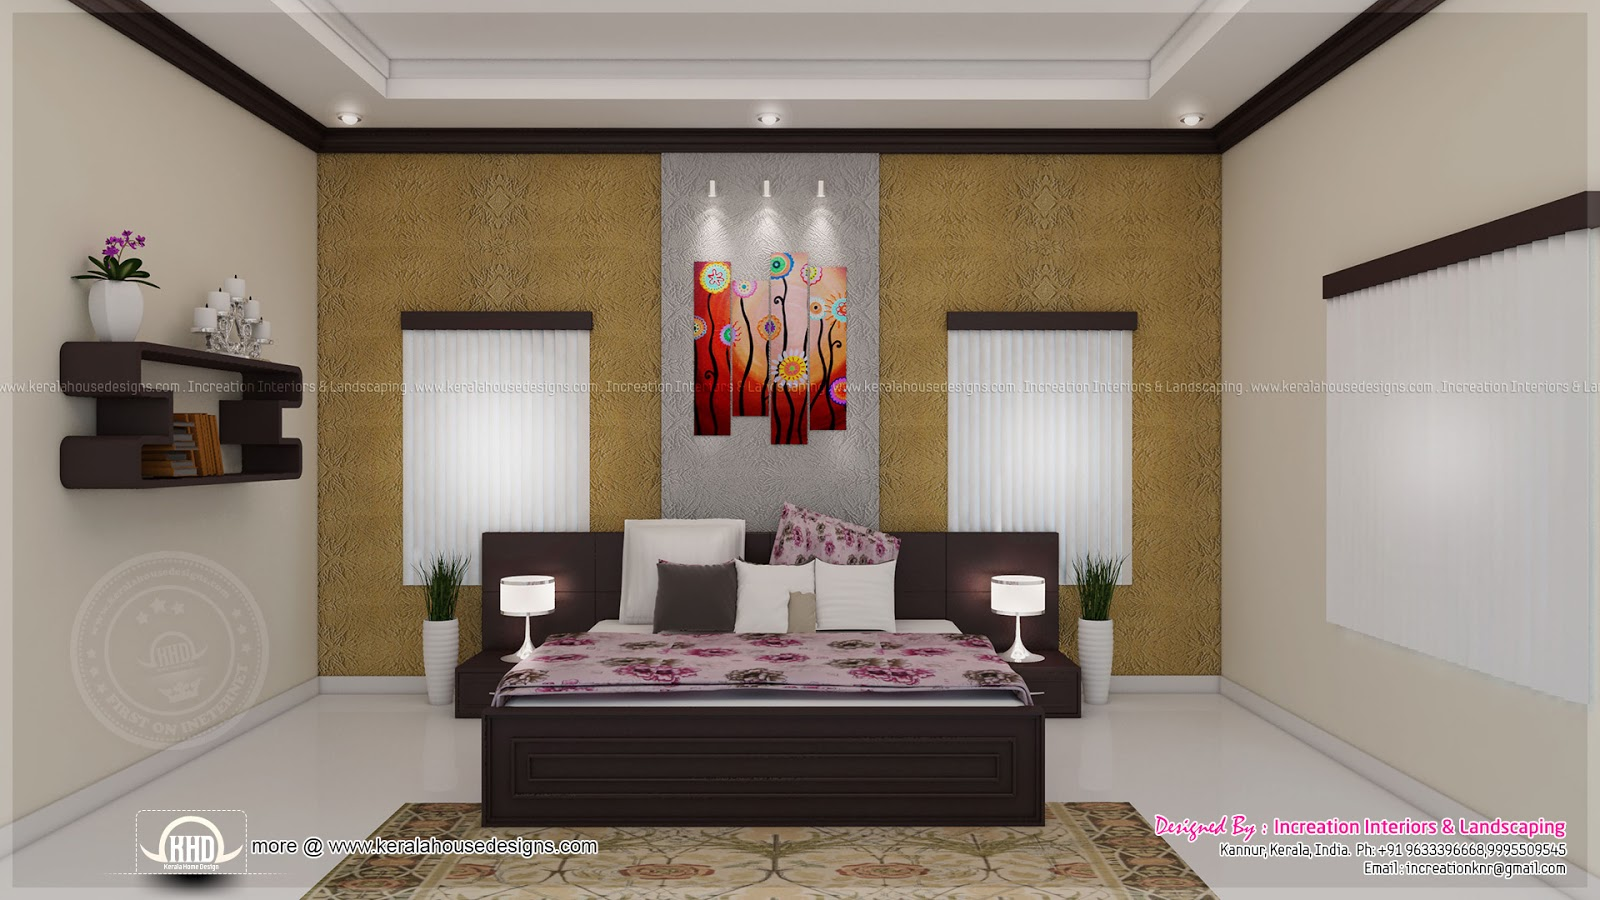 House interior ideas in 3d rendering kerala home design for Interior designs images